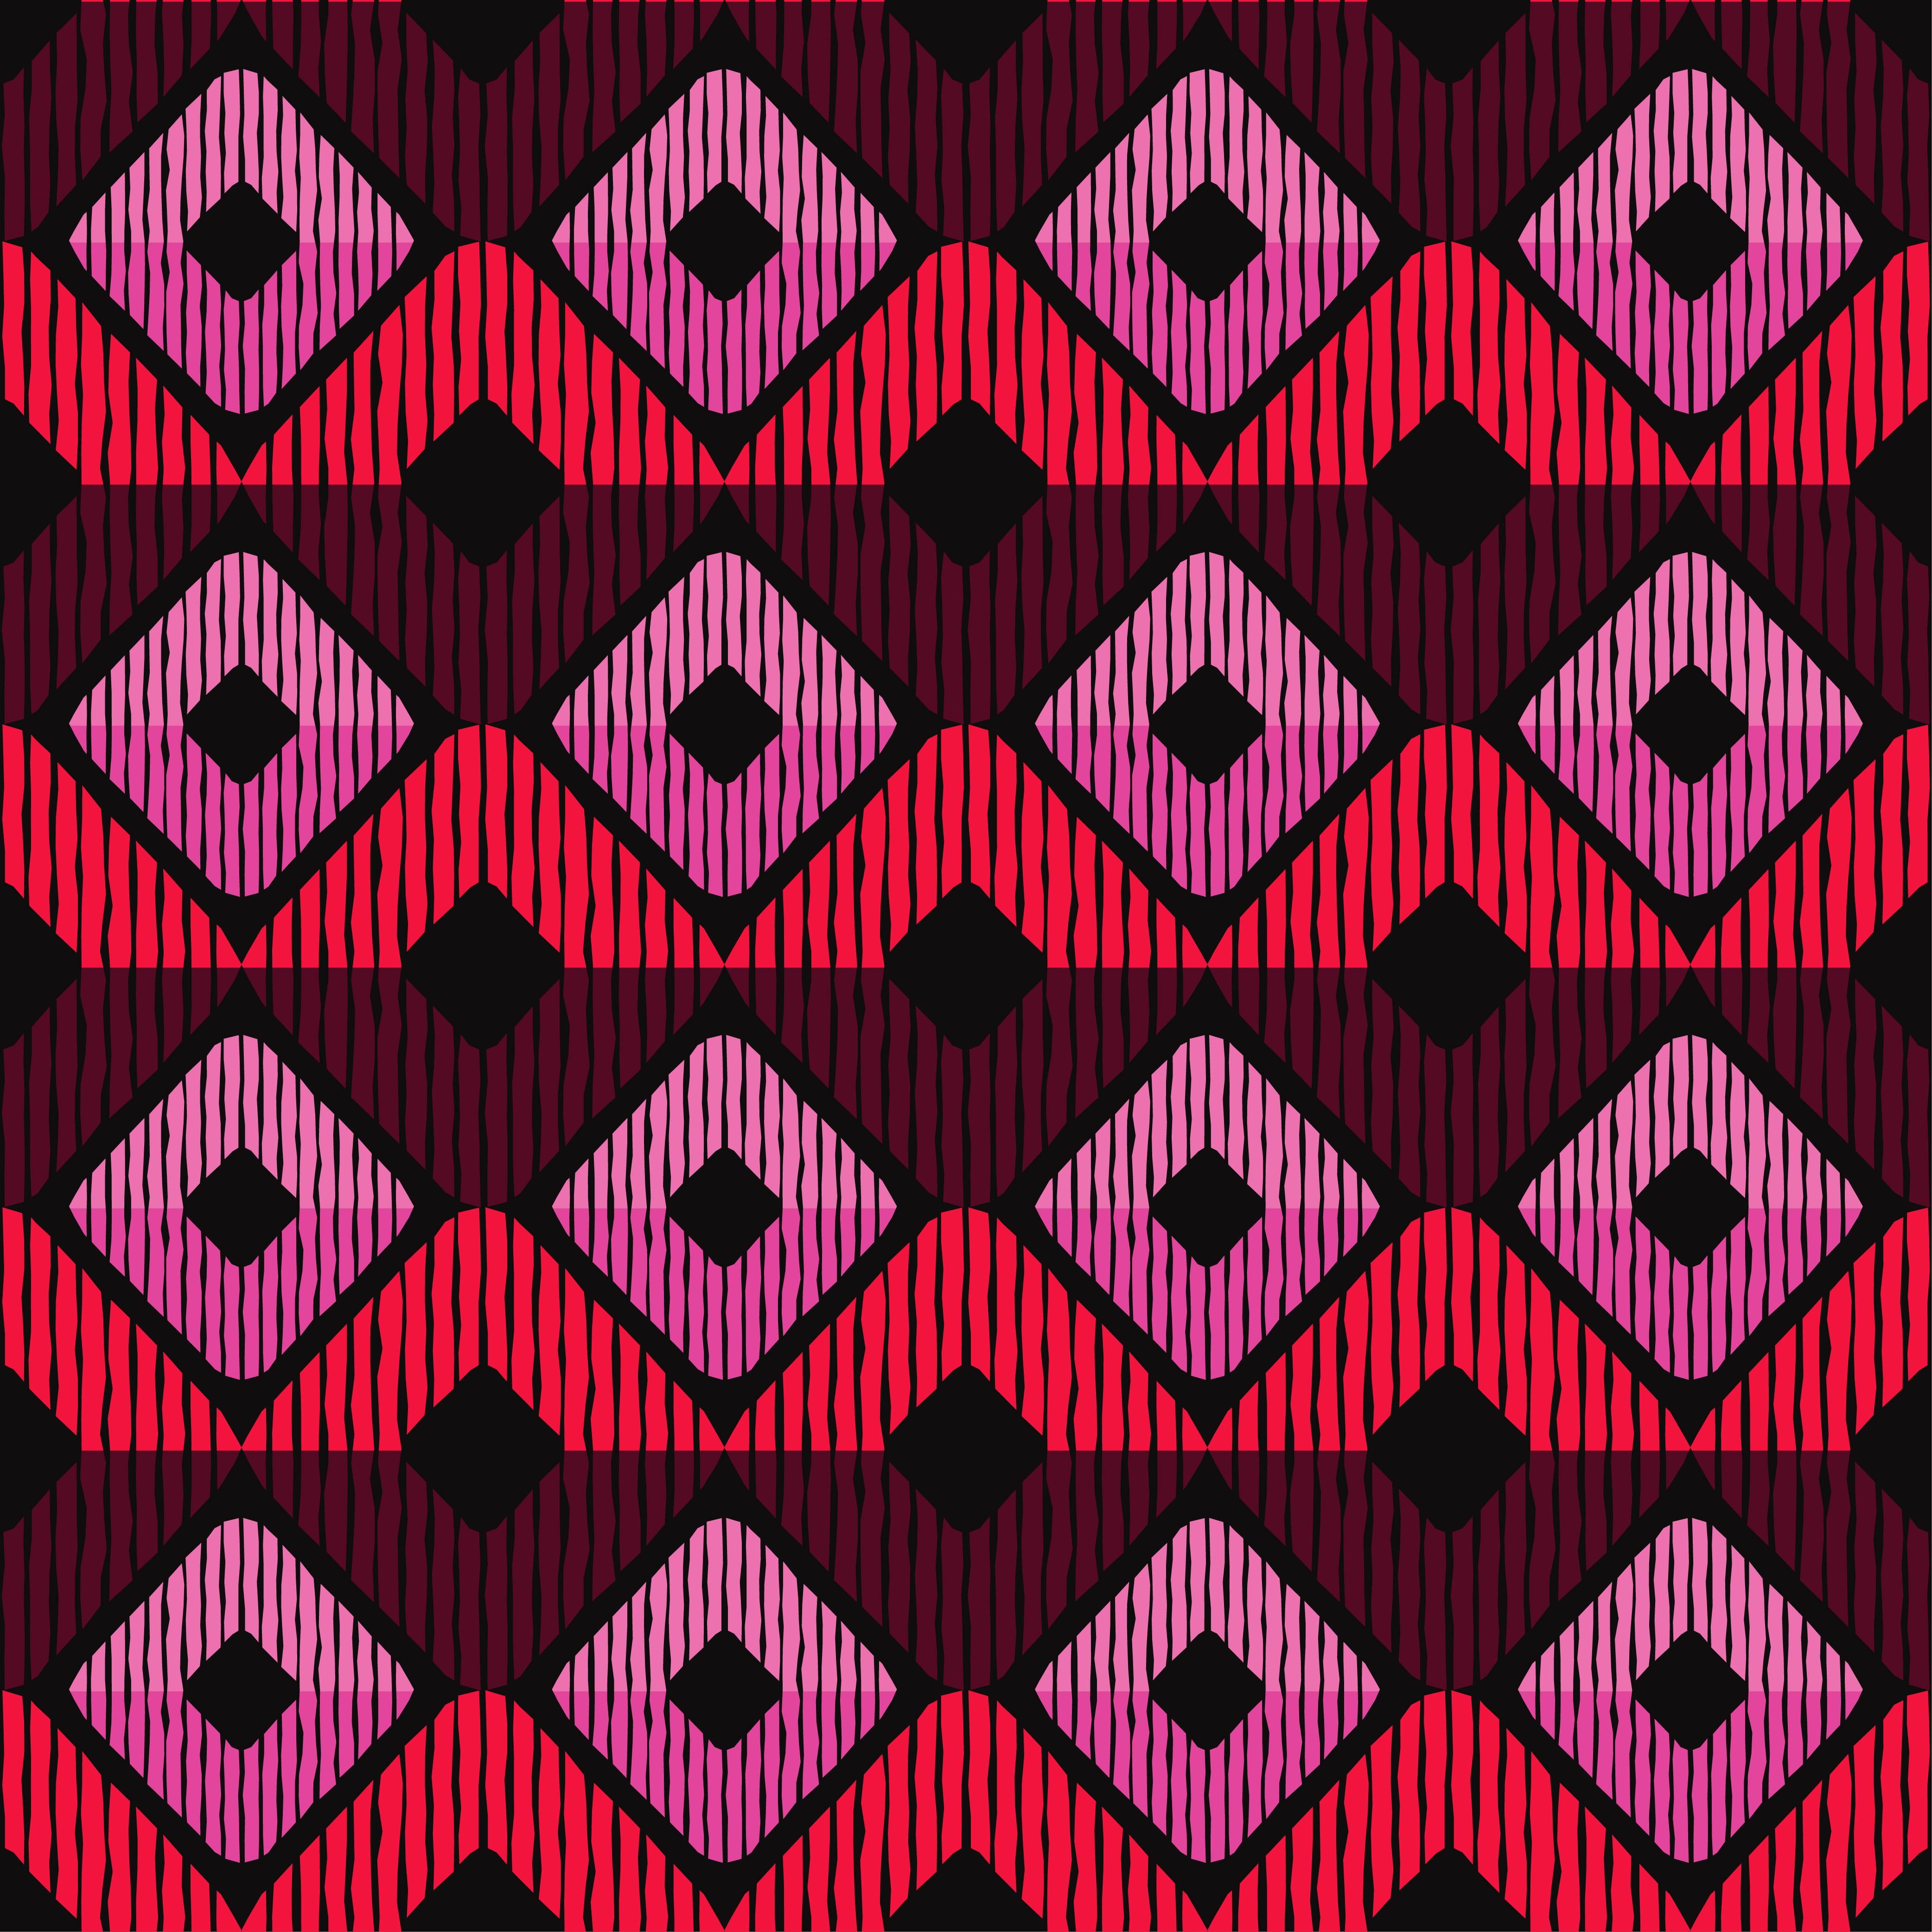 Set of 6 Ethnic boho seamless pattern. Scribble texture. Retro motif. example image 6